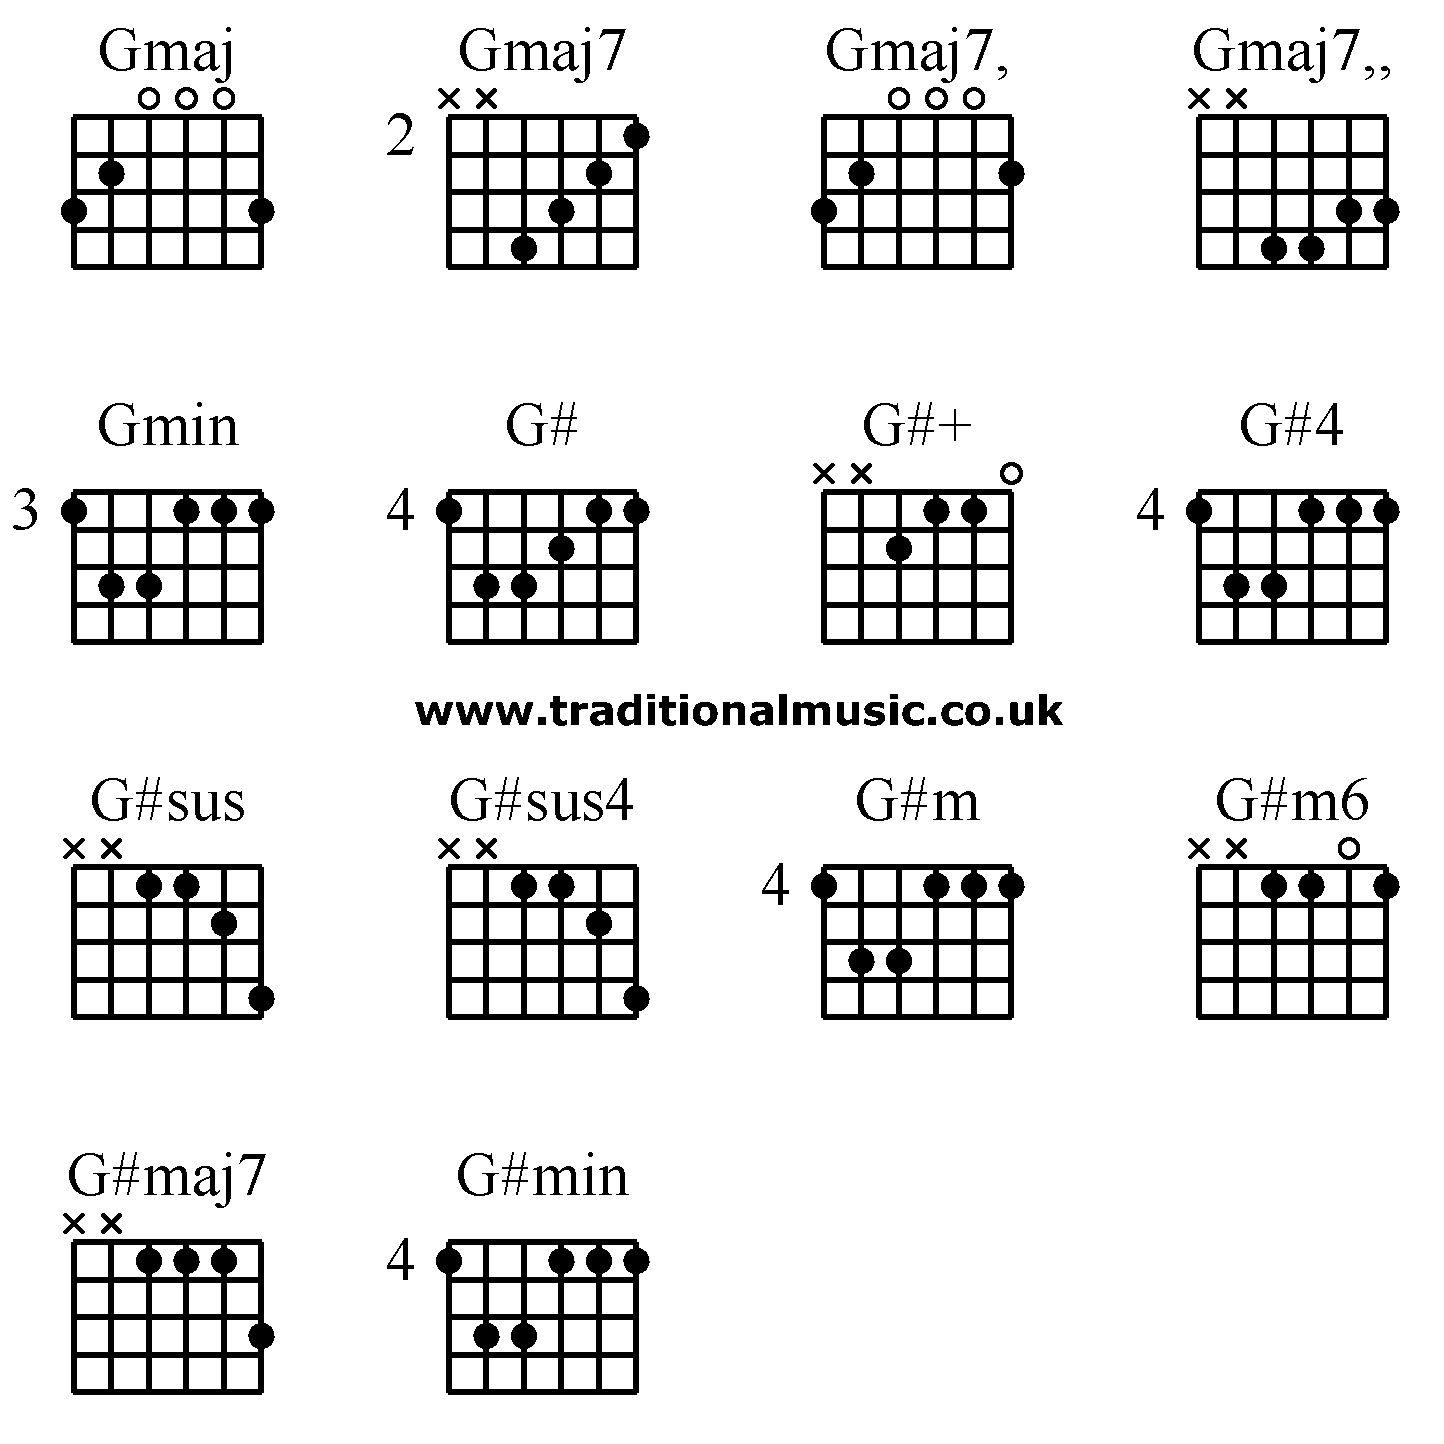 Guitar Chords Advanced Gmaj Gmaj7 Gmaj7 Gmaj7 Gmin G G G4 G